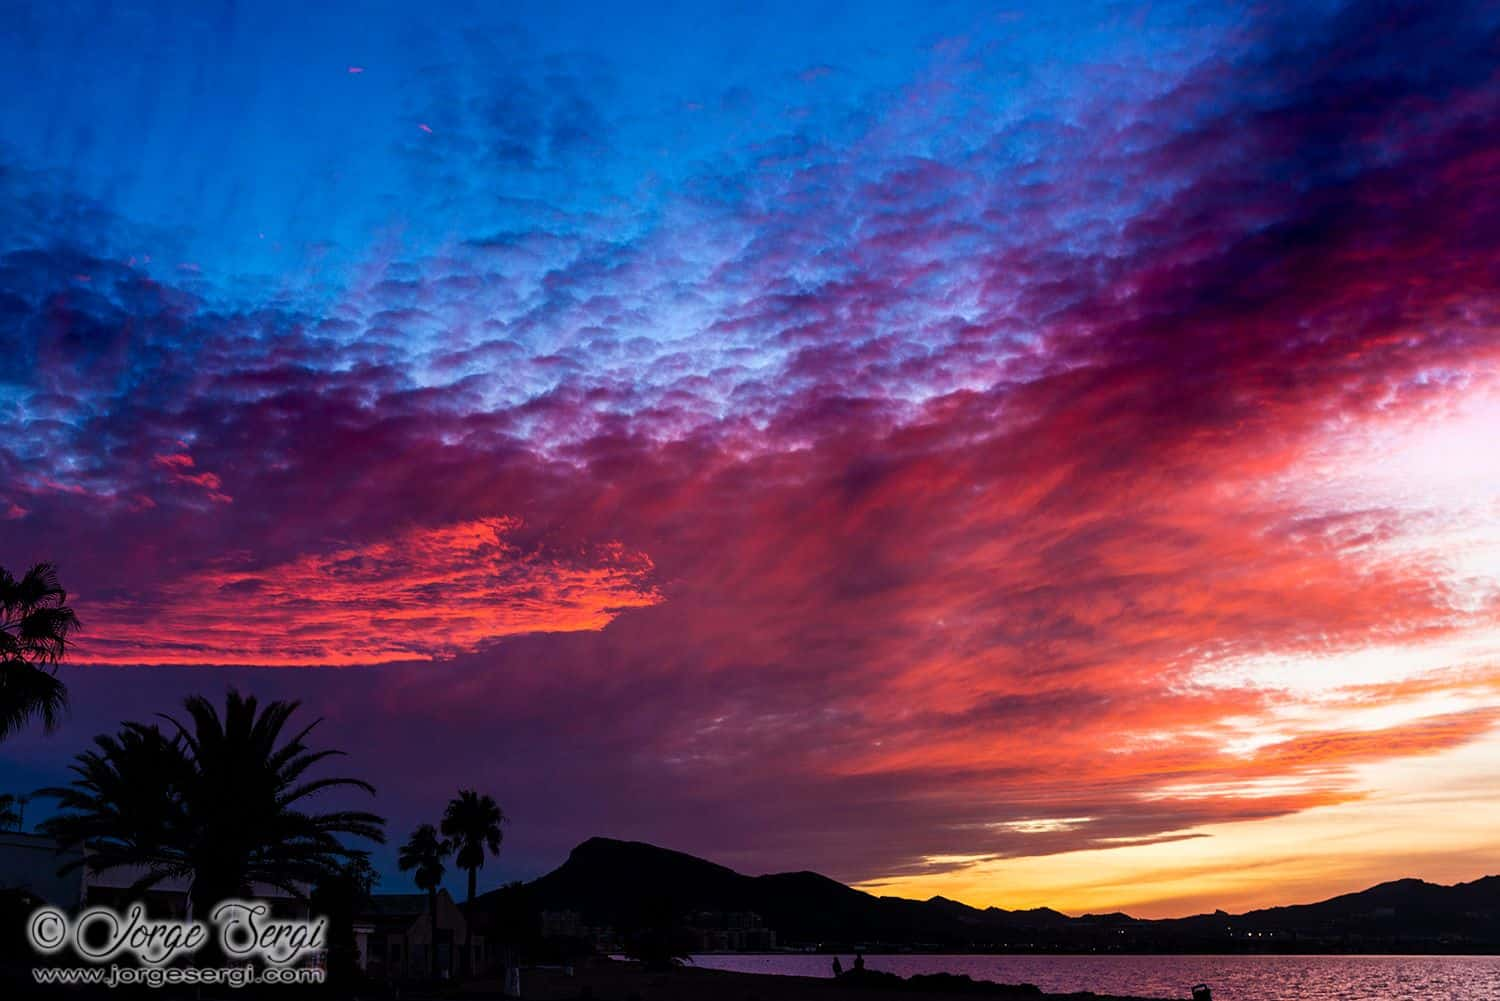 A simply gorgeous sunset over the Mar Menor